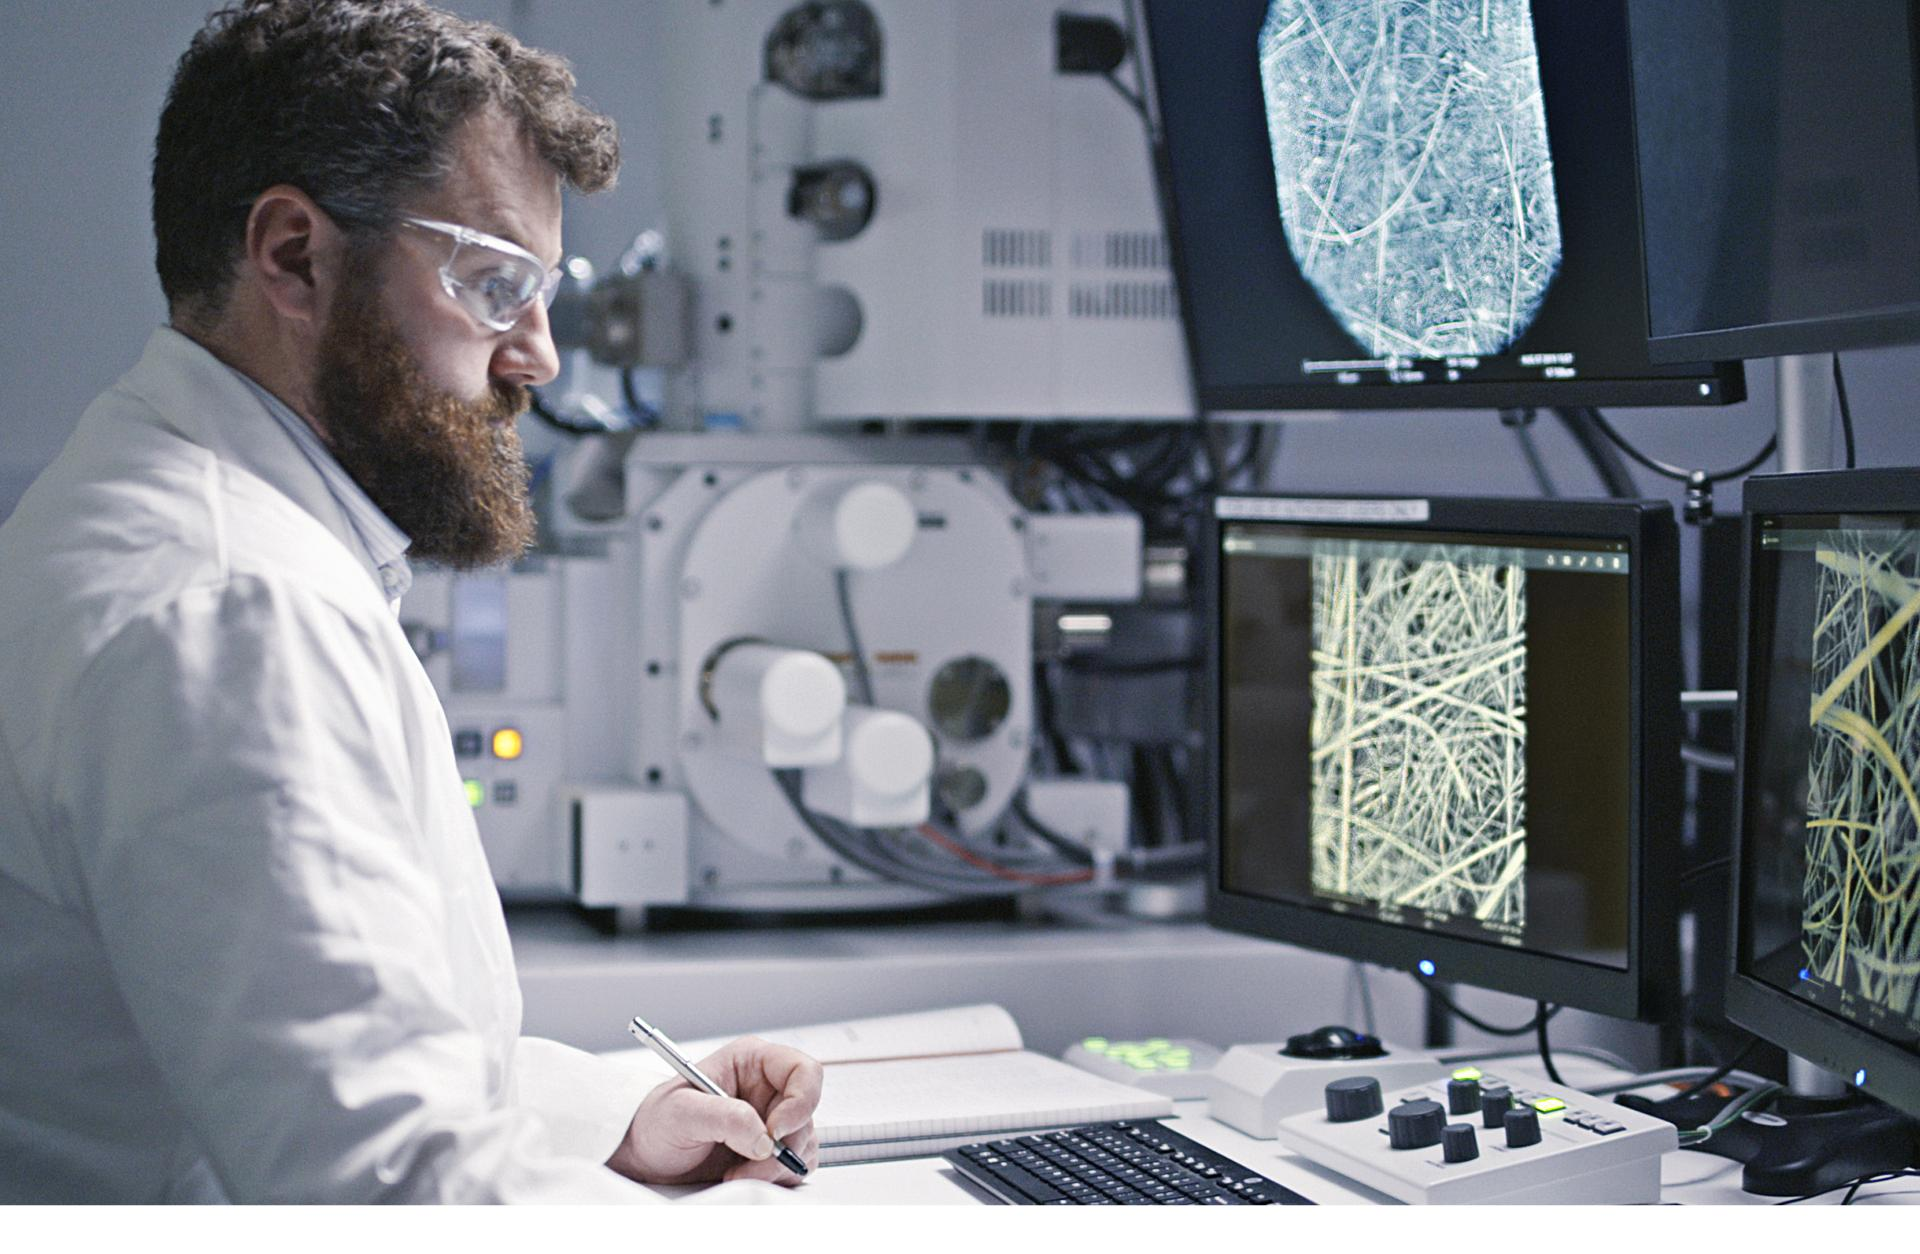 A scientist studying fibres on computer screens